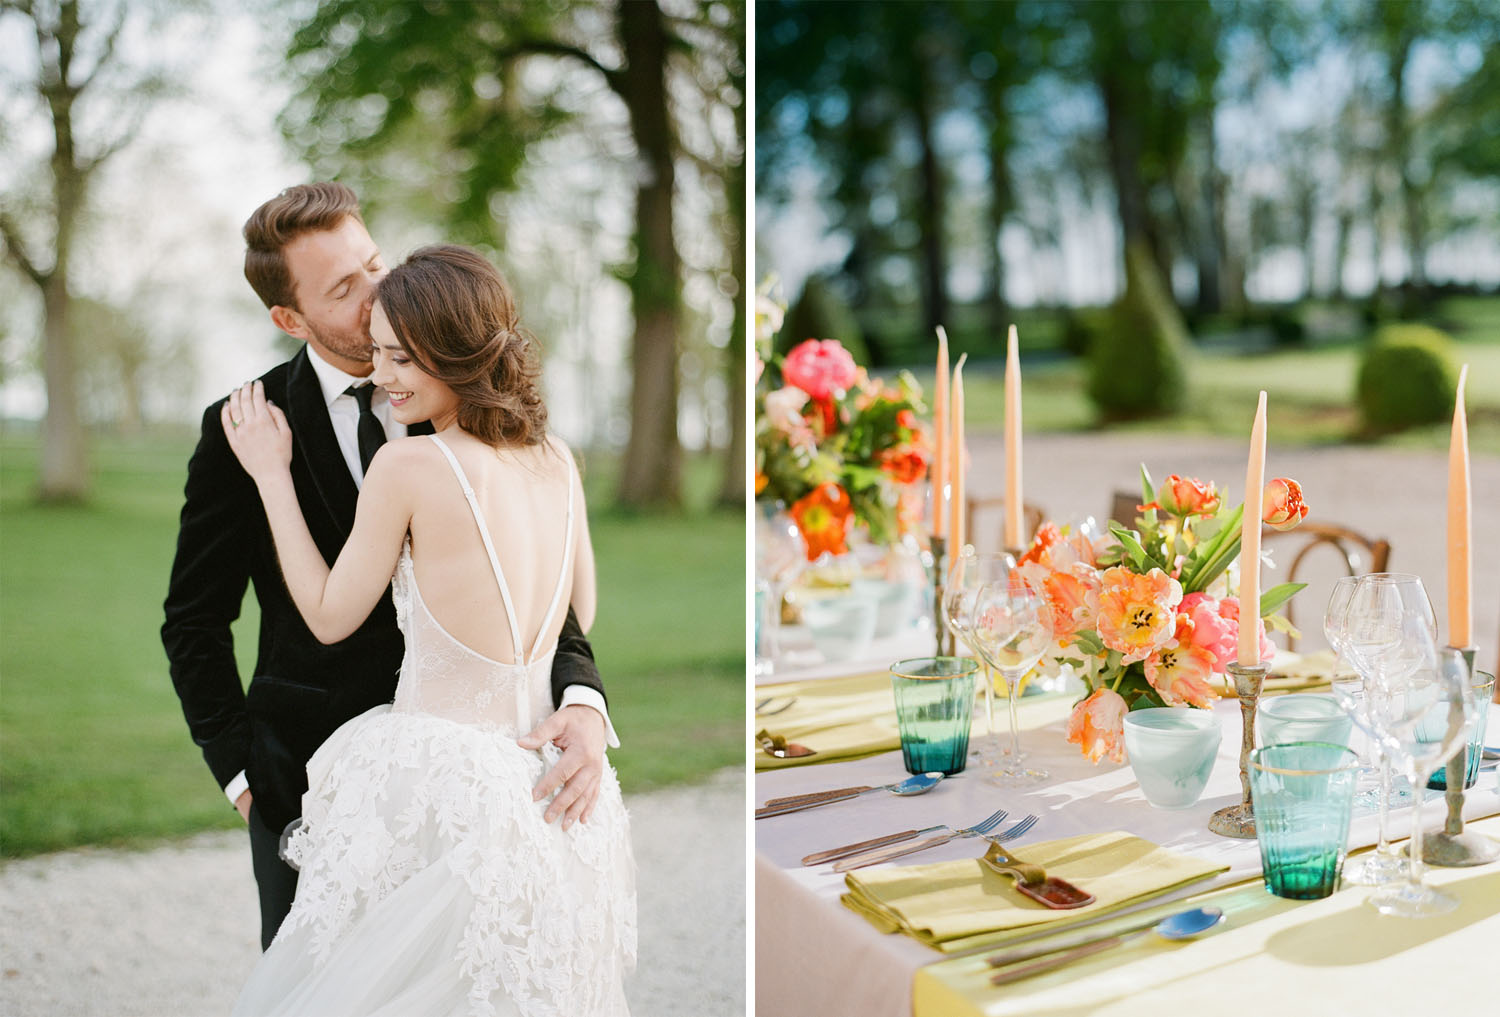 A jewel-toned wedding reception table at Chateau de Varennes in Burgundy, France; Sylvie Gil Photography